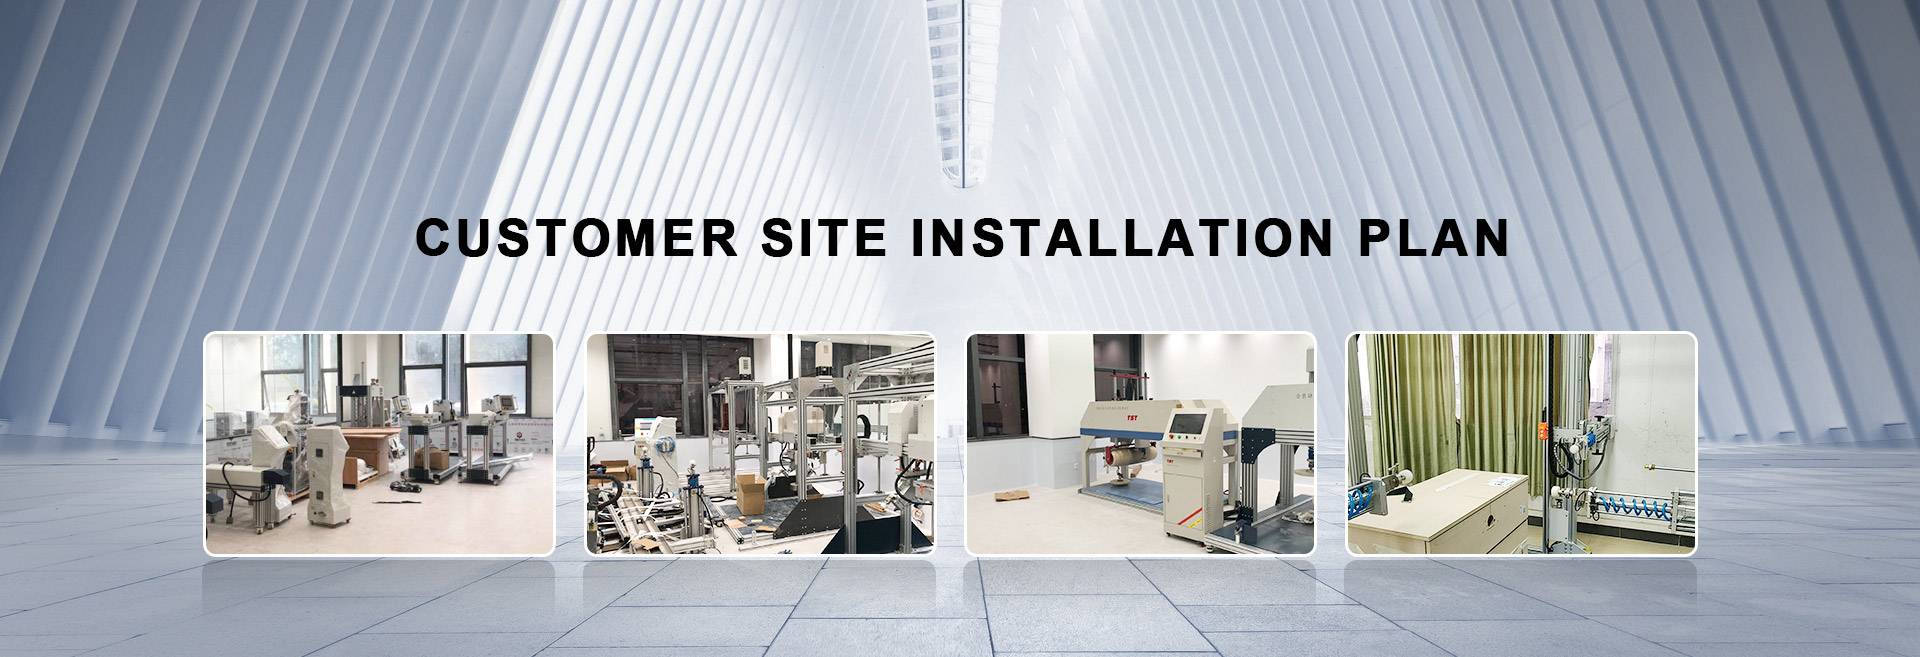 Customer site installation plan